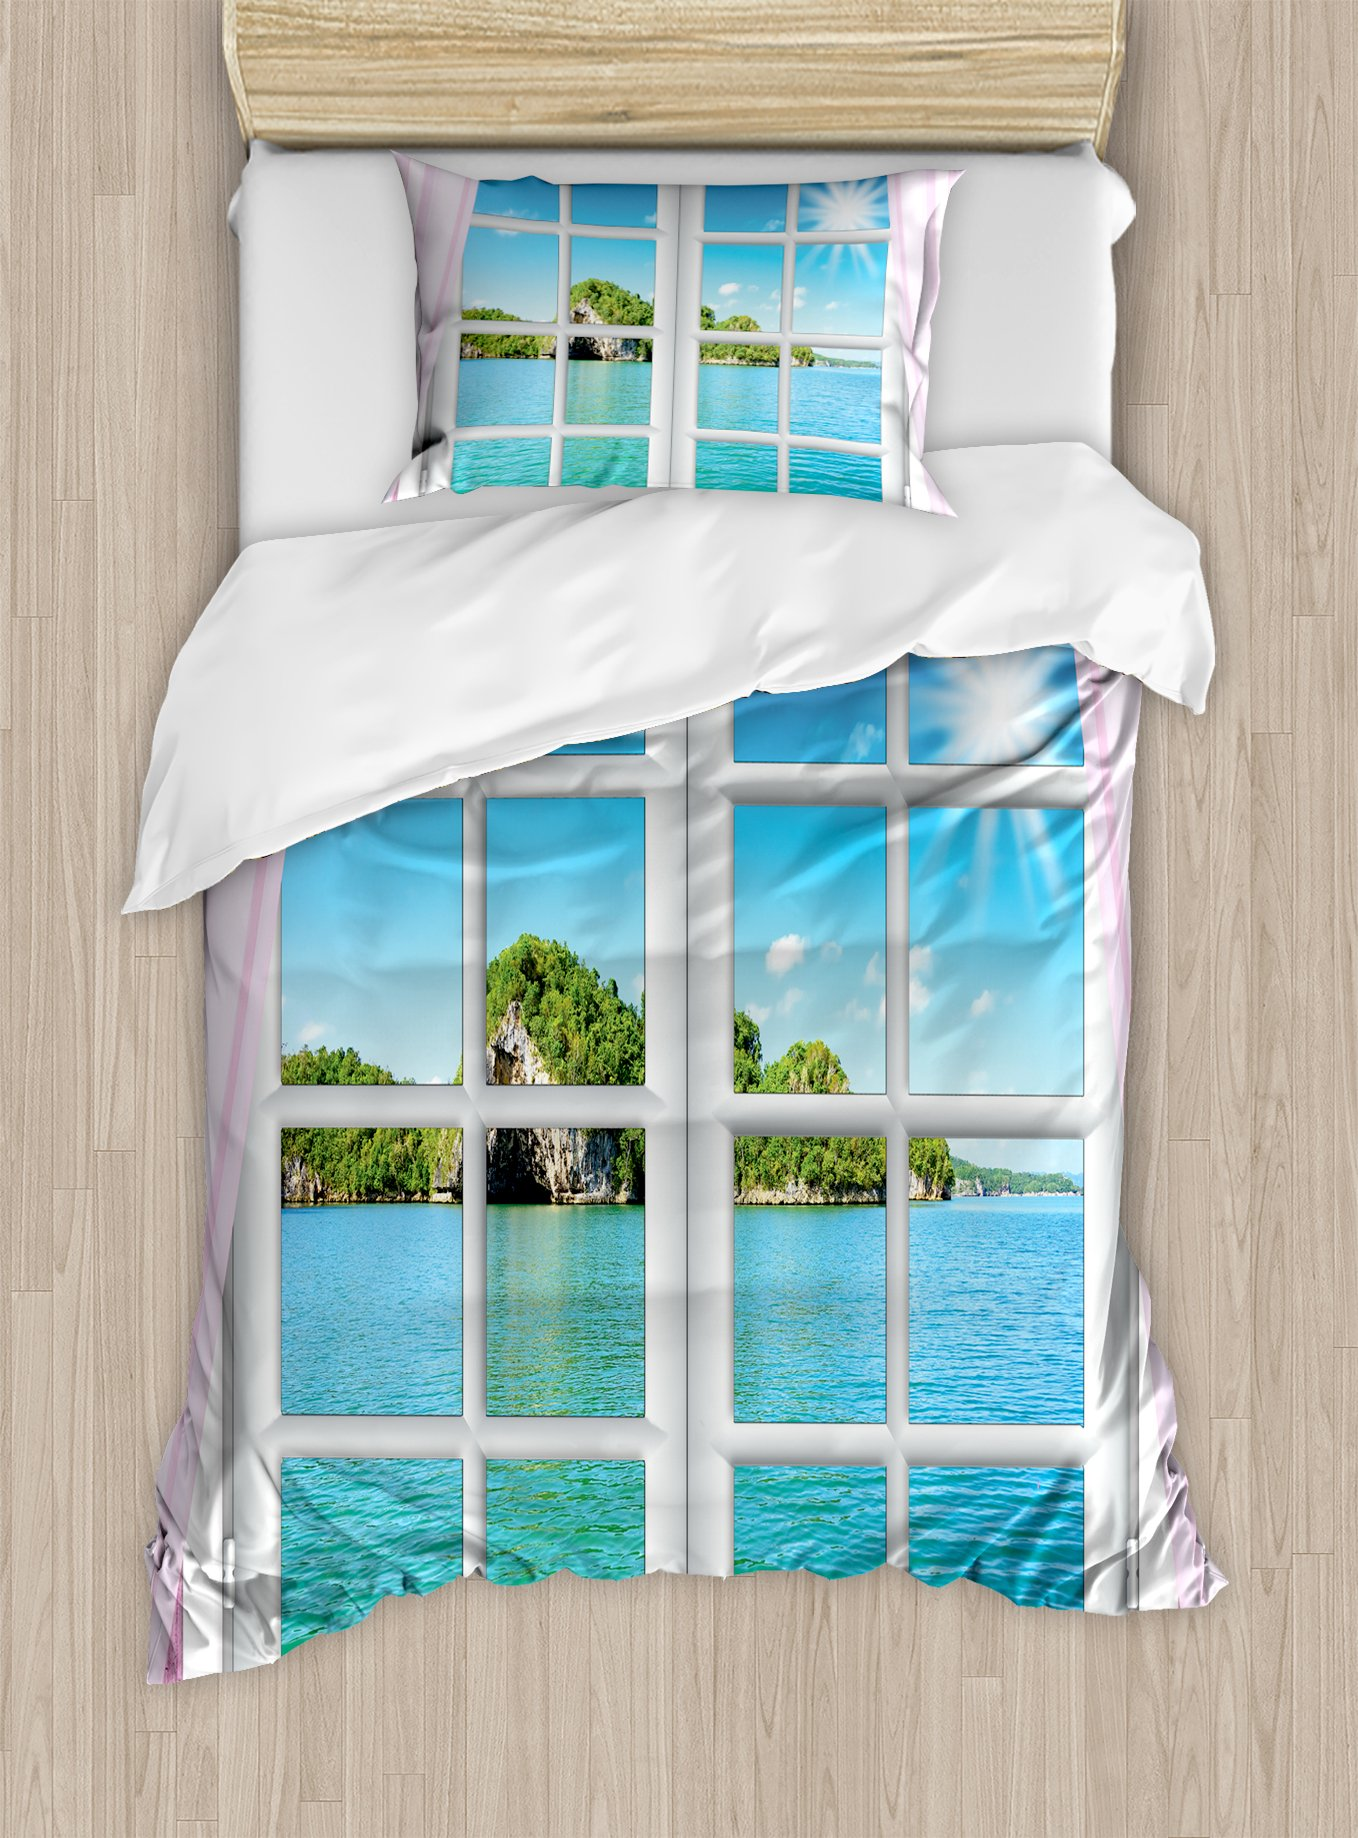 Ambesonne Ocean Duvet Cover Set Twin Size, Ocean View from The Window on Island in Sunny Summer Day Peaceful Relaxation Resting, Decorative 2 Piece Bedding Set with 1 Pillow Sham, Pink Blue